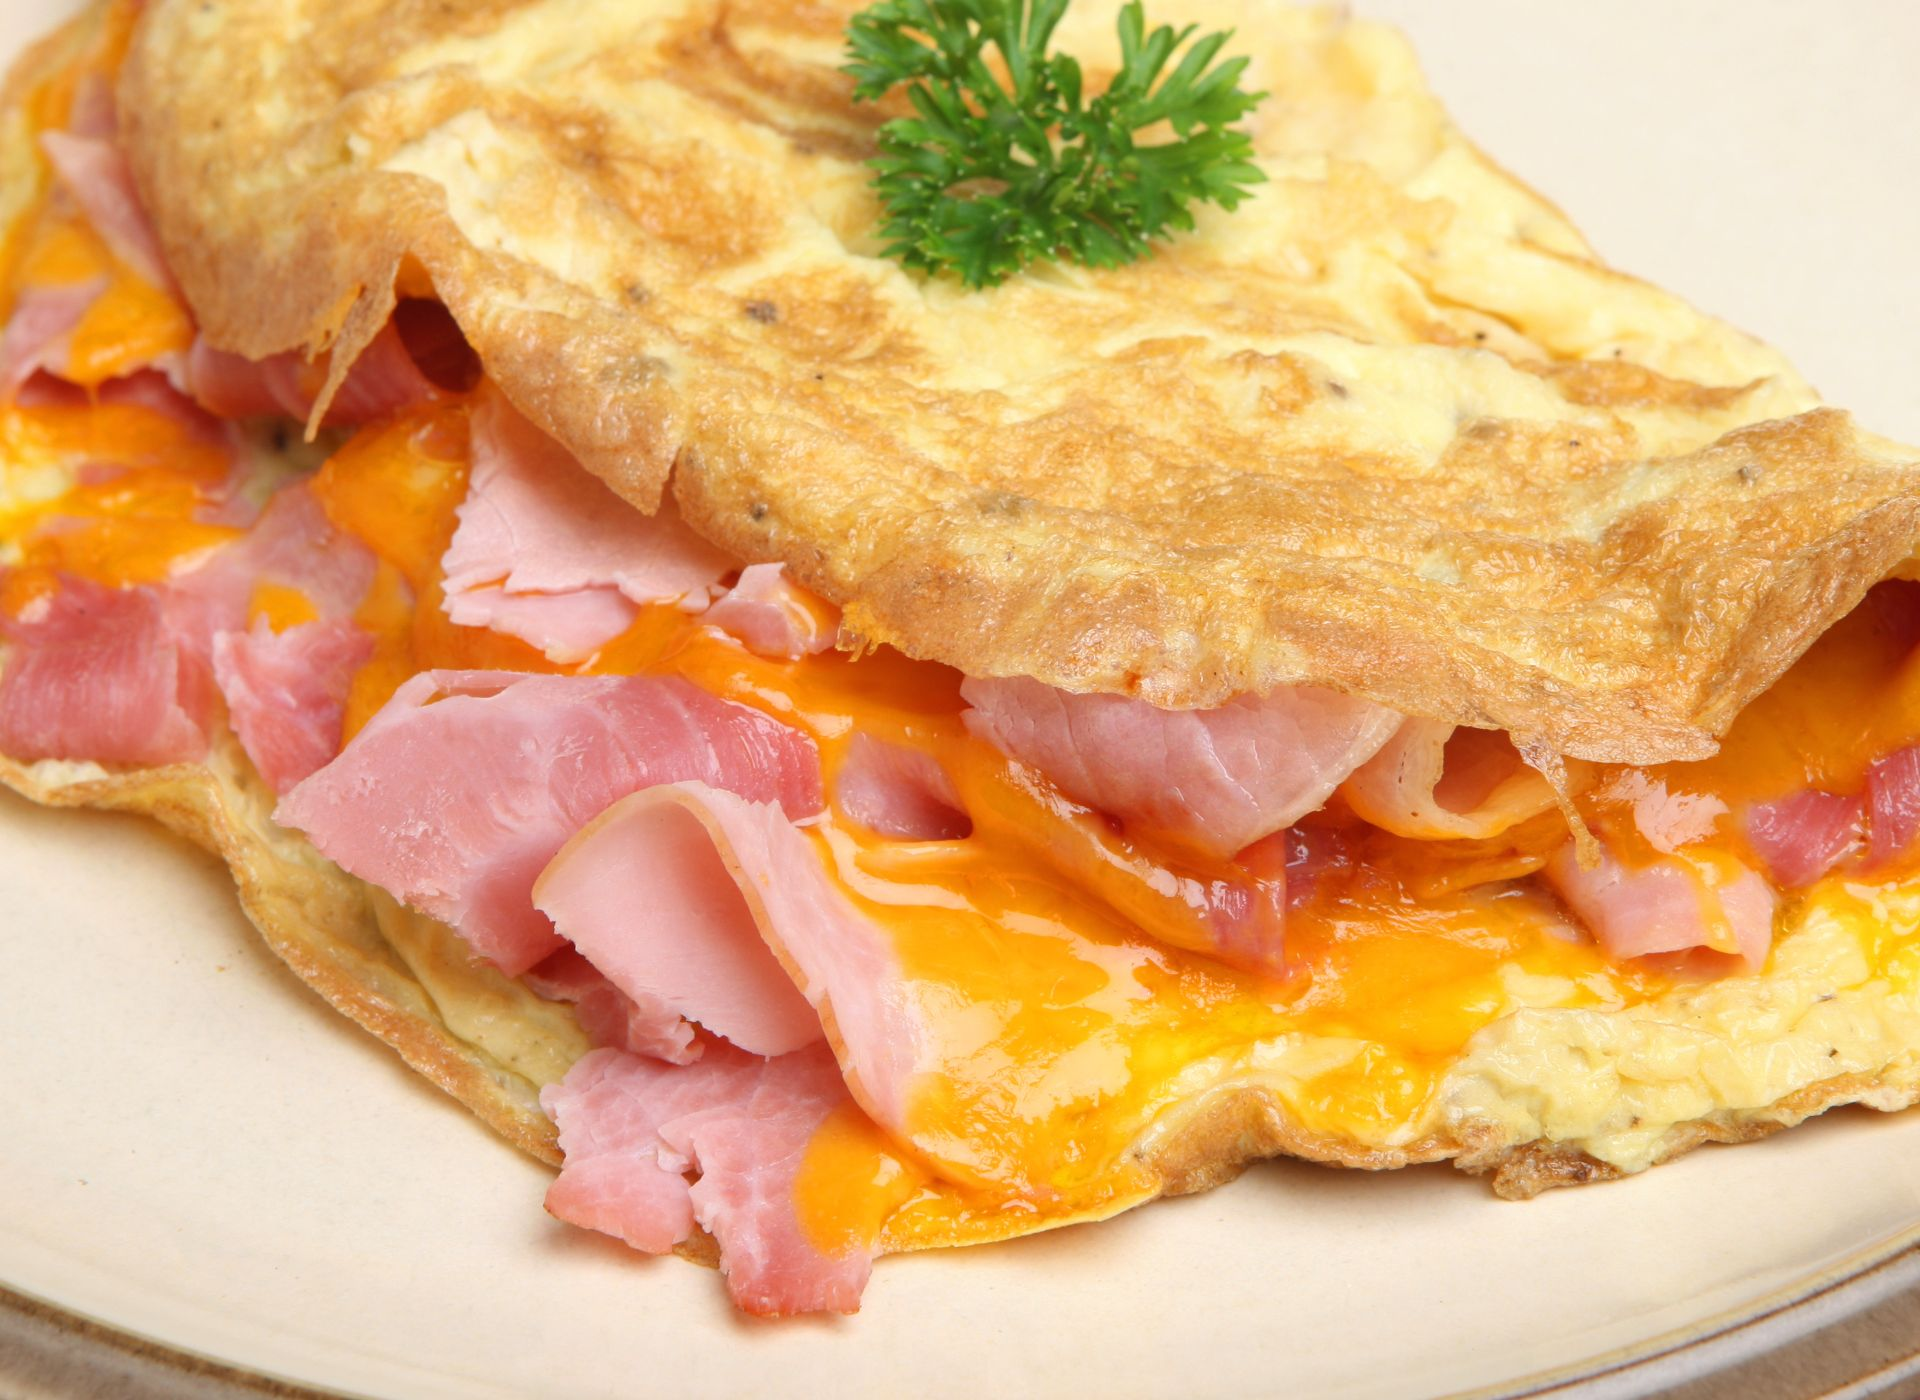 Ham and cheese omelet on a plate